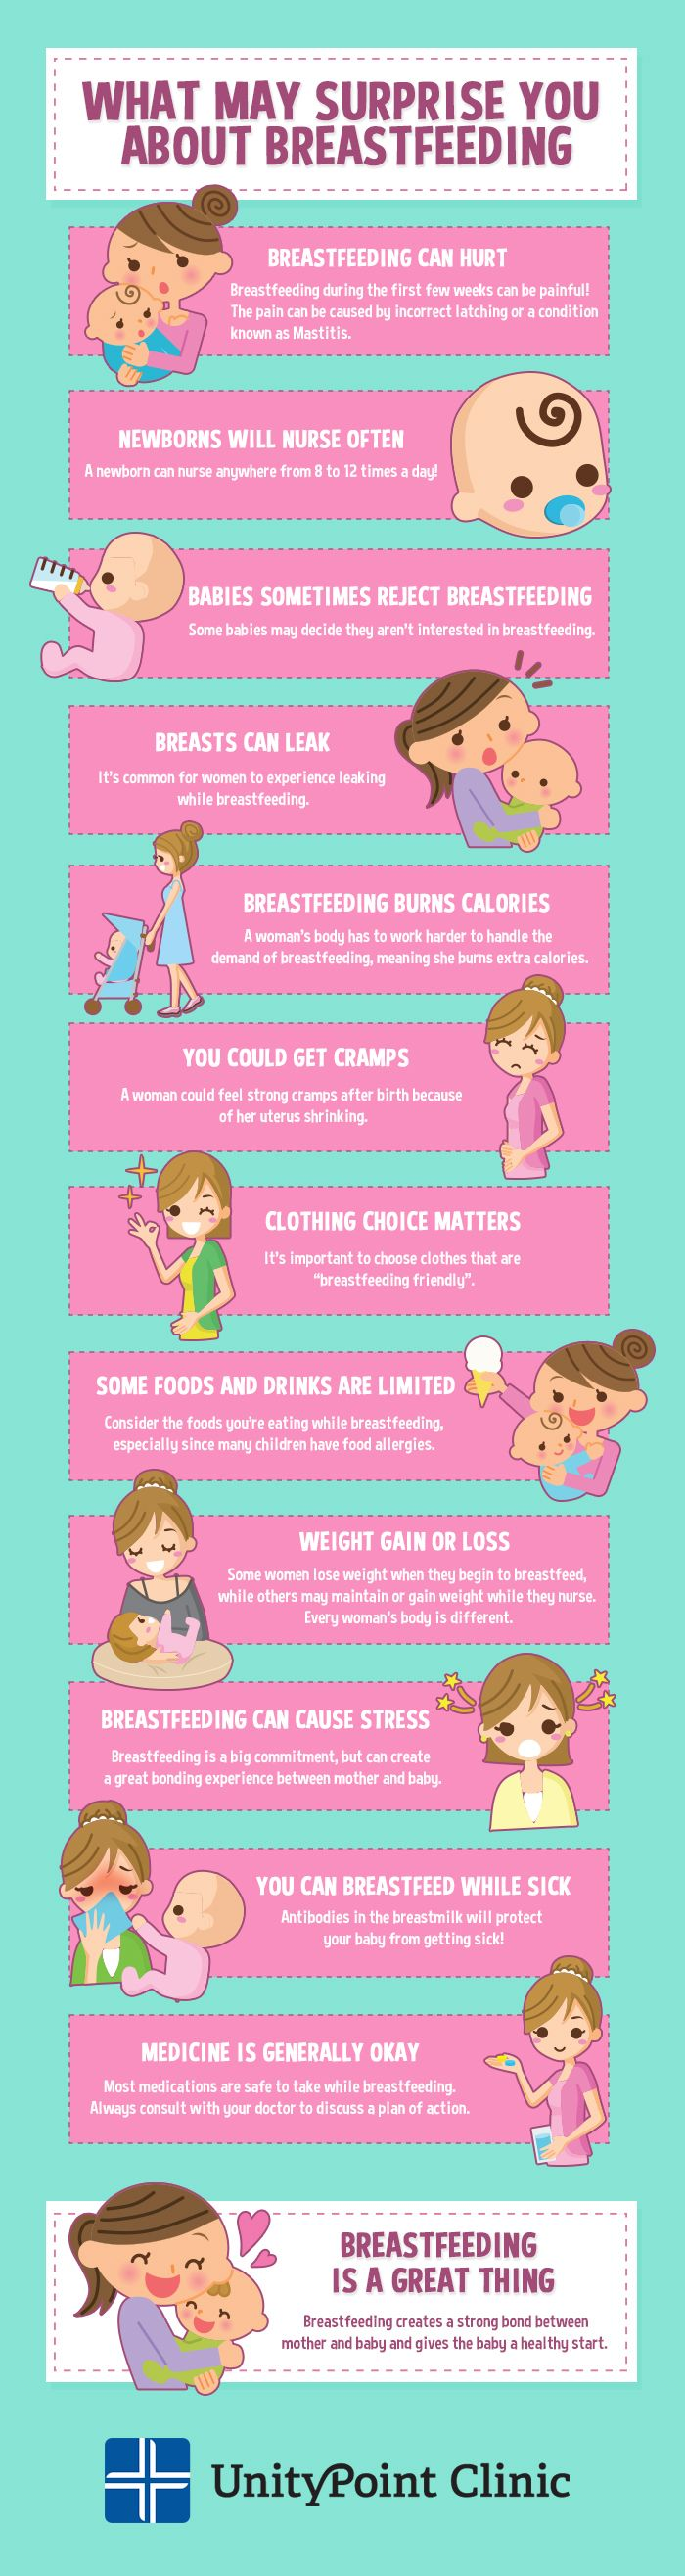 Check out these 12 surprising things about breastfeeding from UnityPoint Clinic!